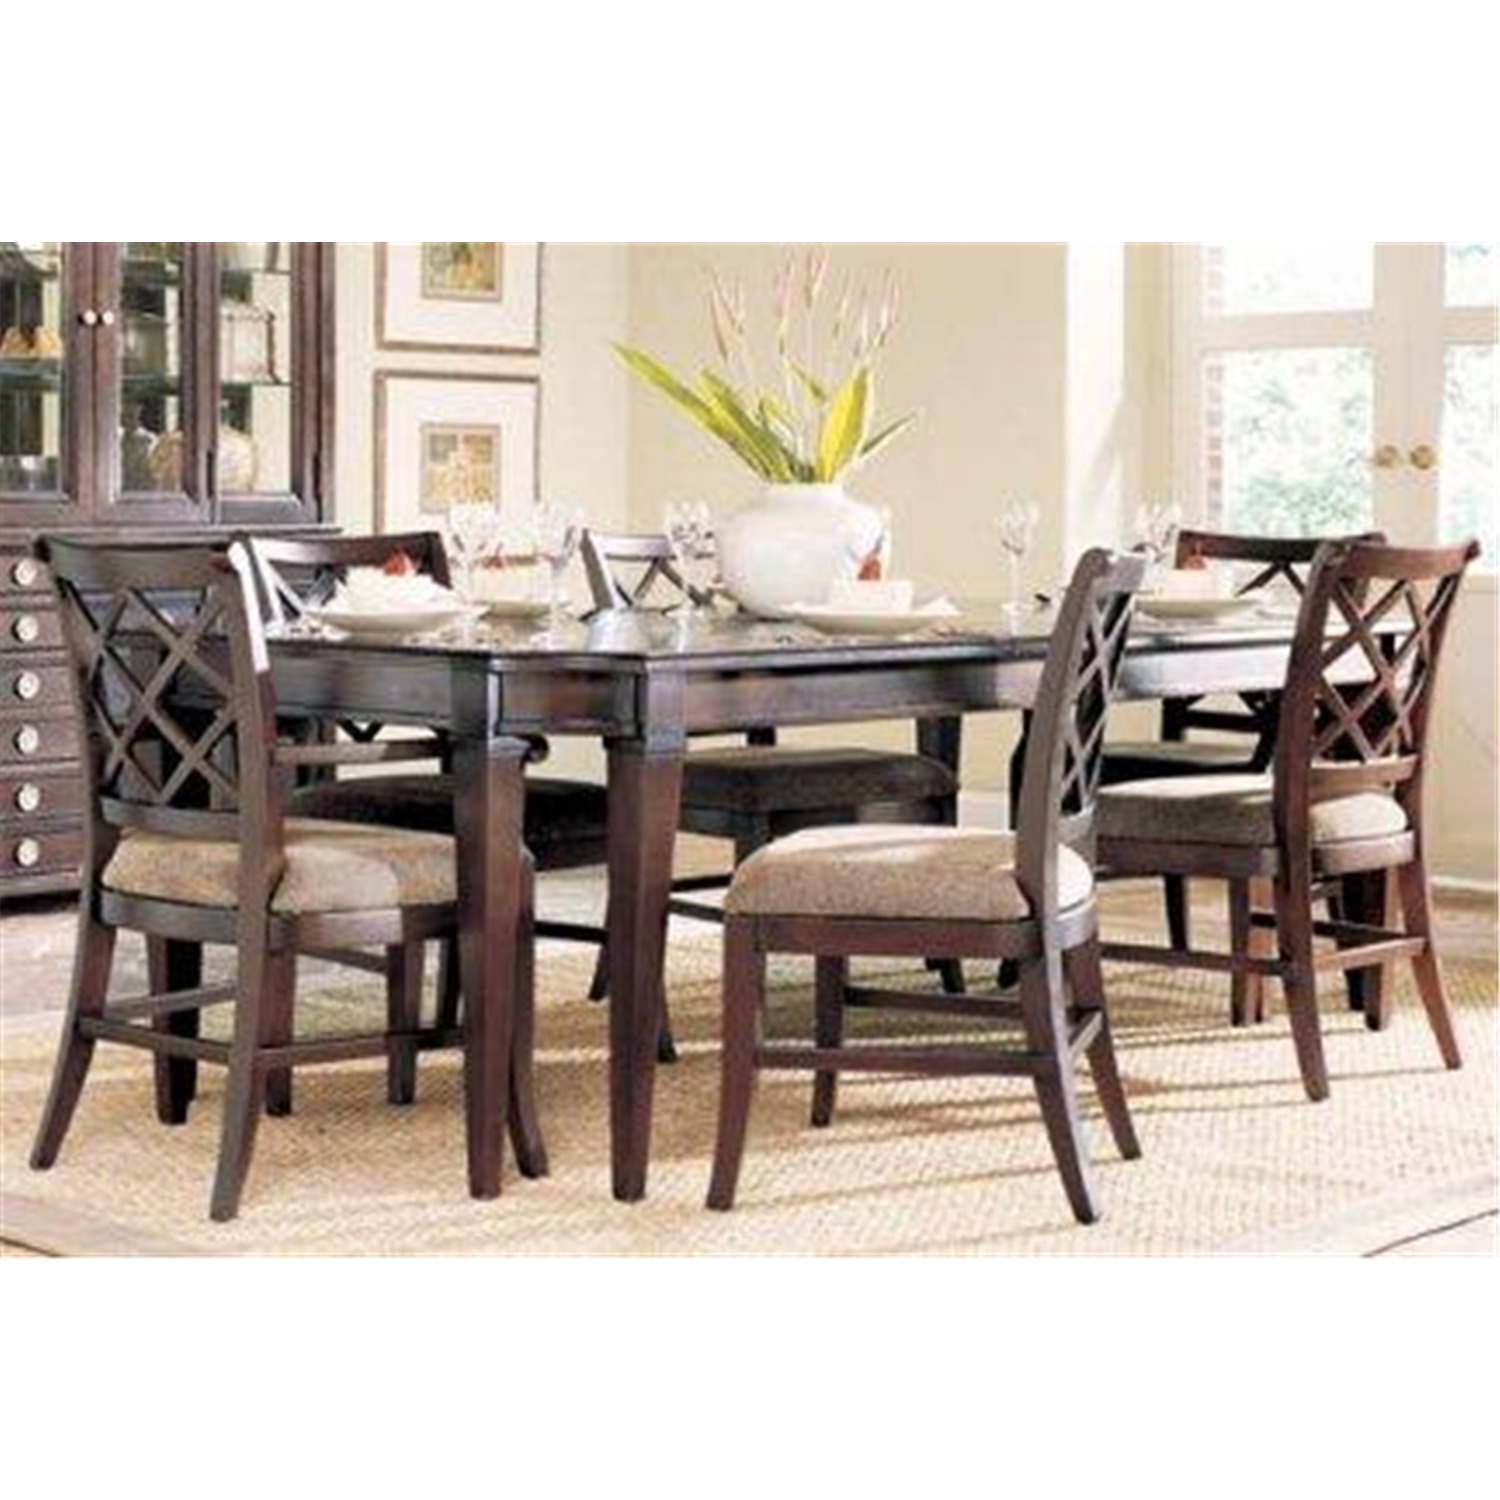 Furniture home goods appliances athletic gear fitness for Table 52 parking